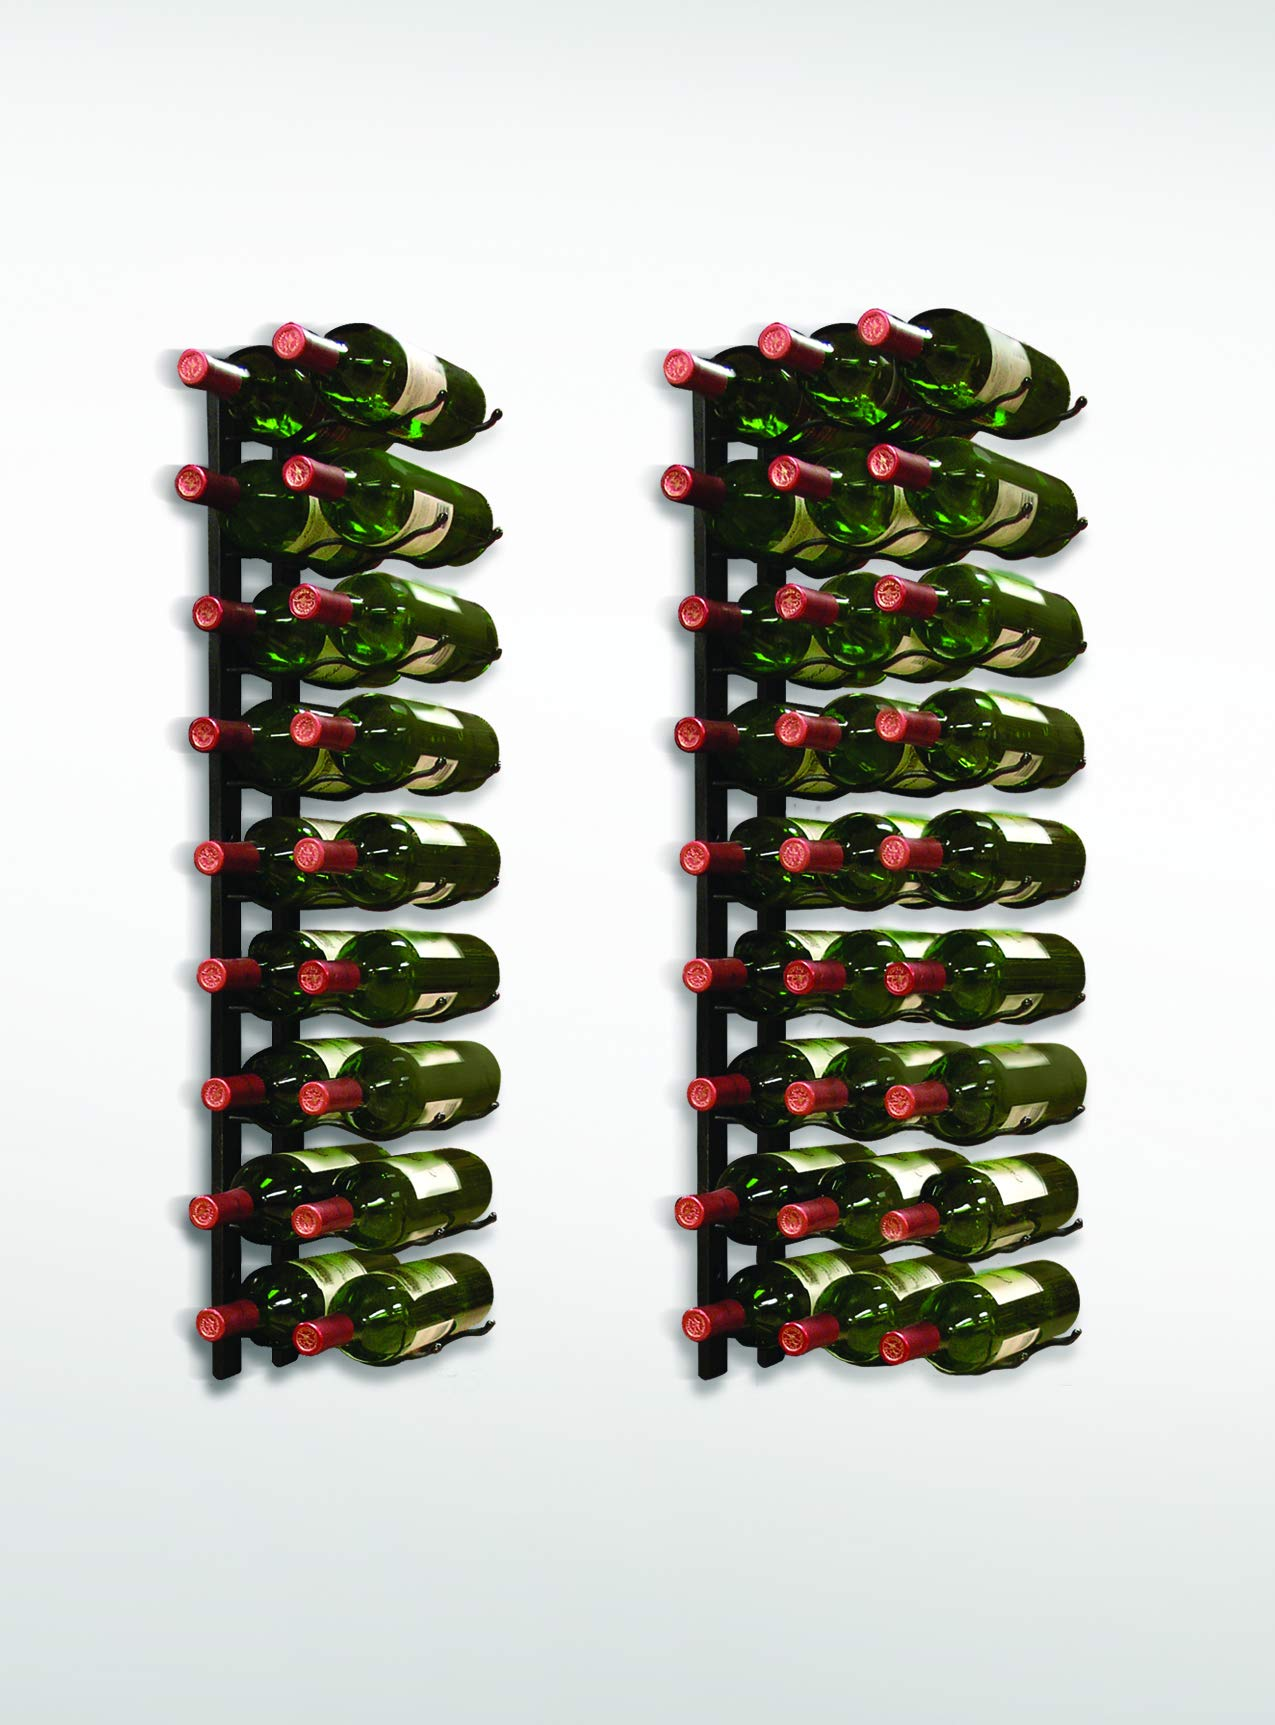 Vinotemp Metal Wall-Mount 27-Bottle Wine Rack, Black by Vinotemp (Image #1)